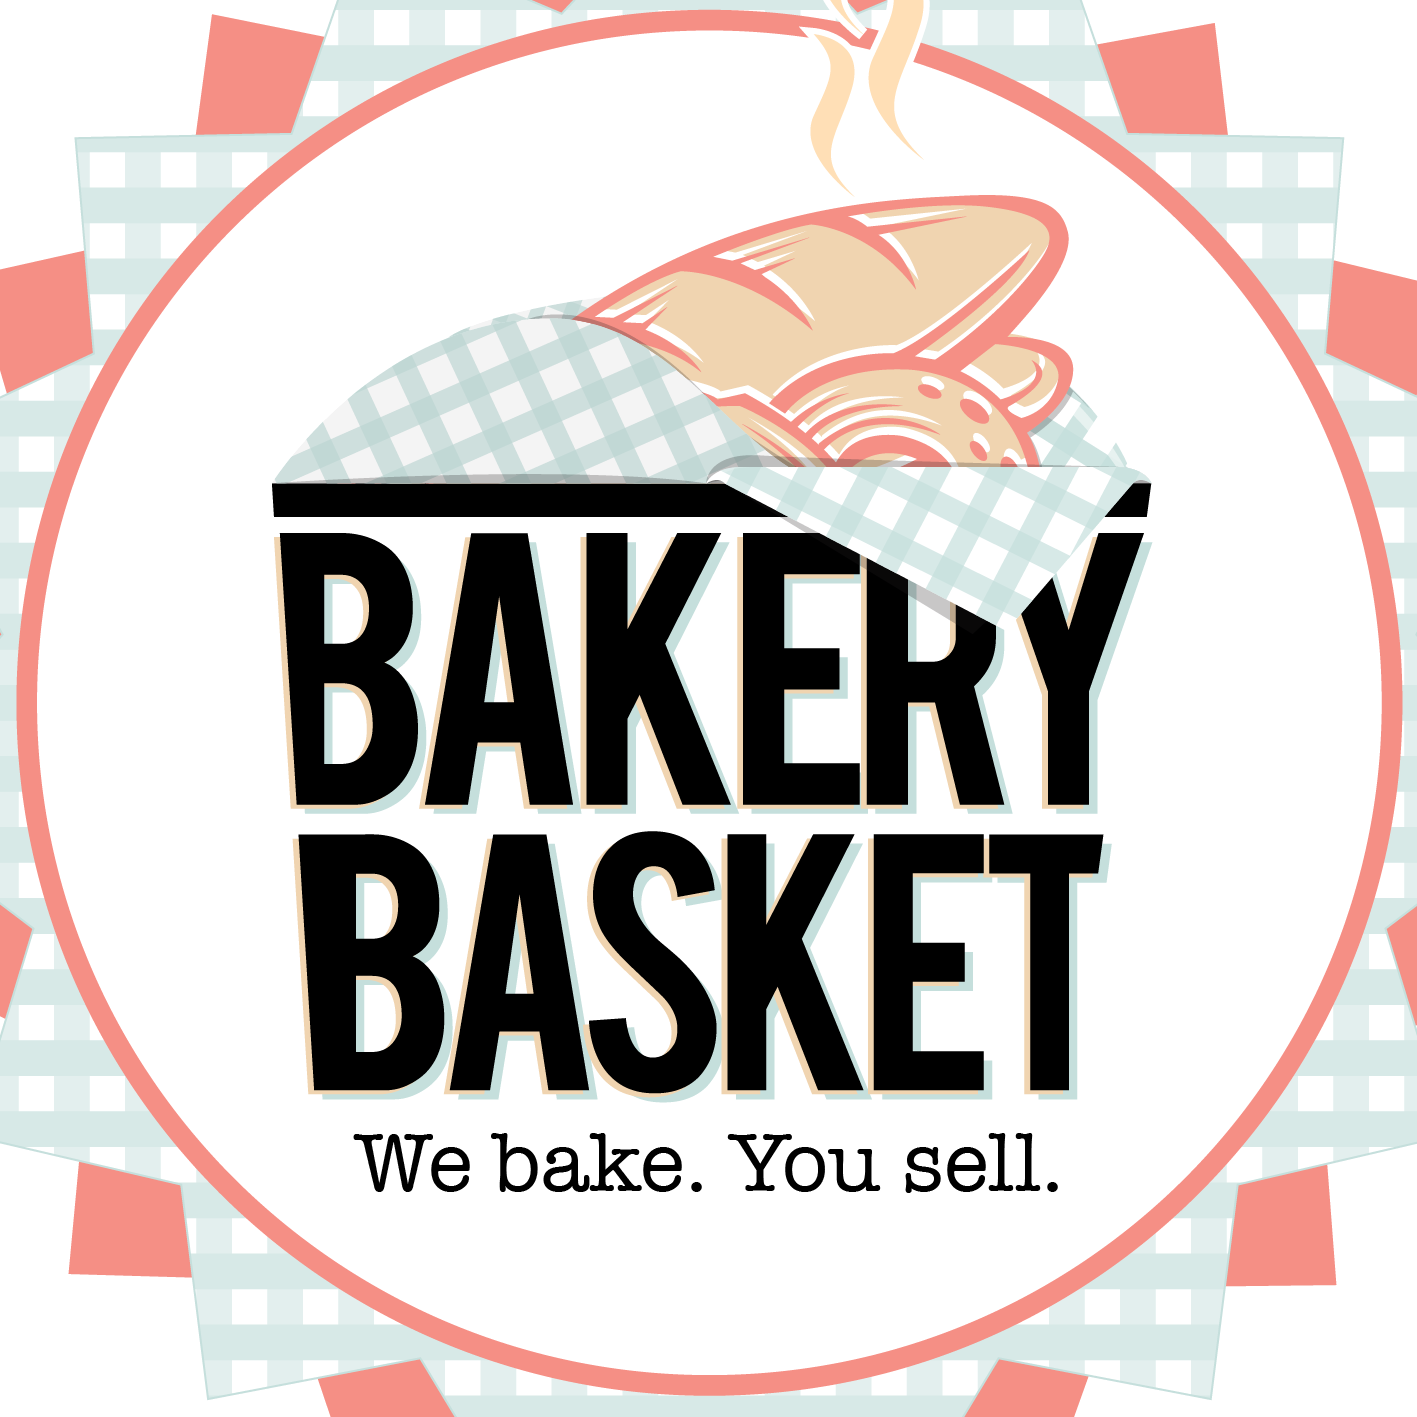 Bakery Specialized Seller